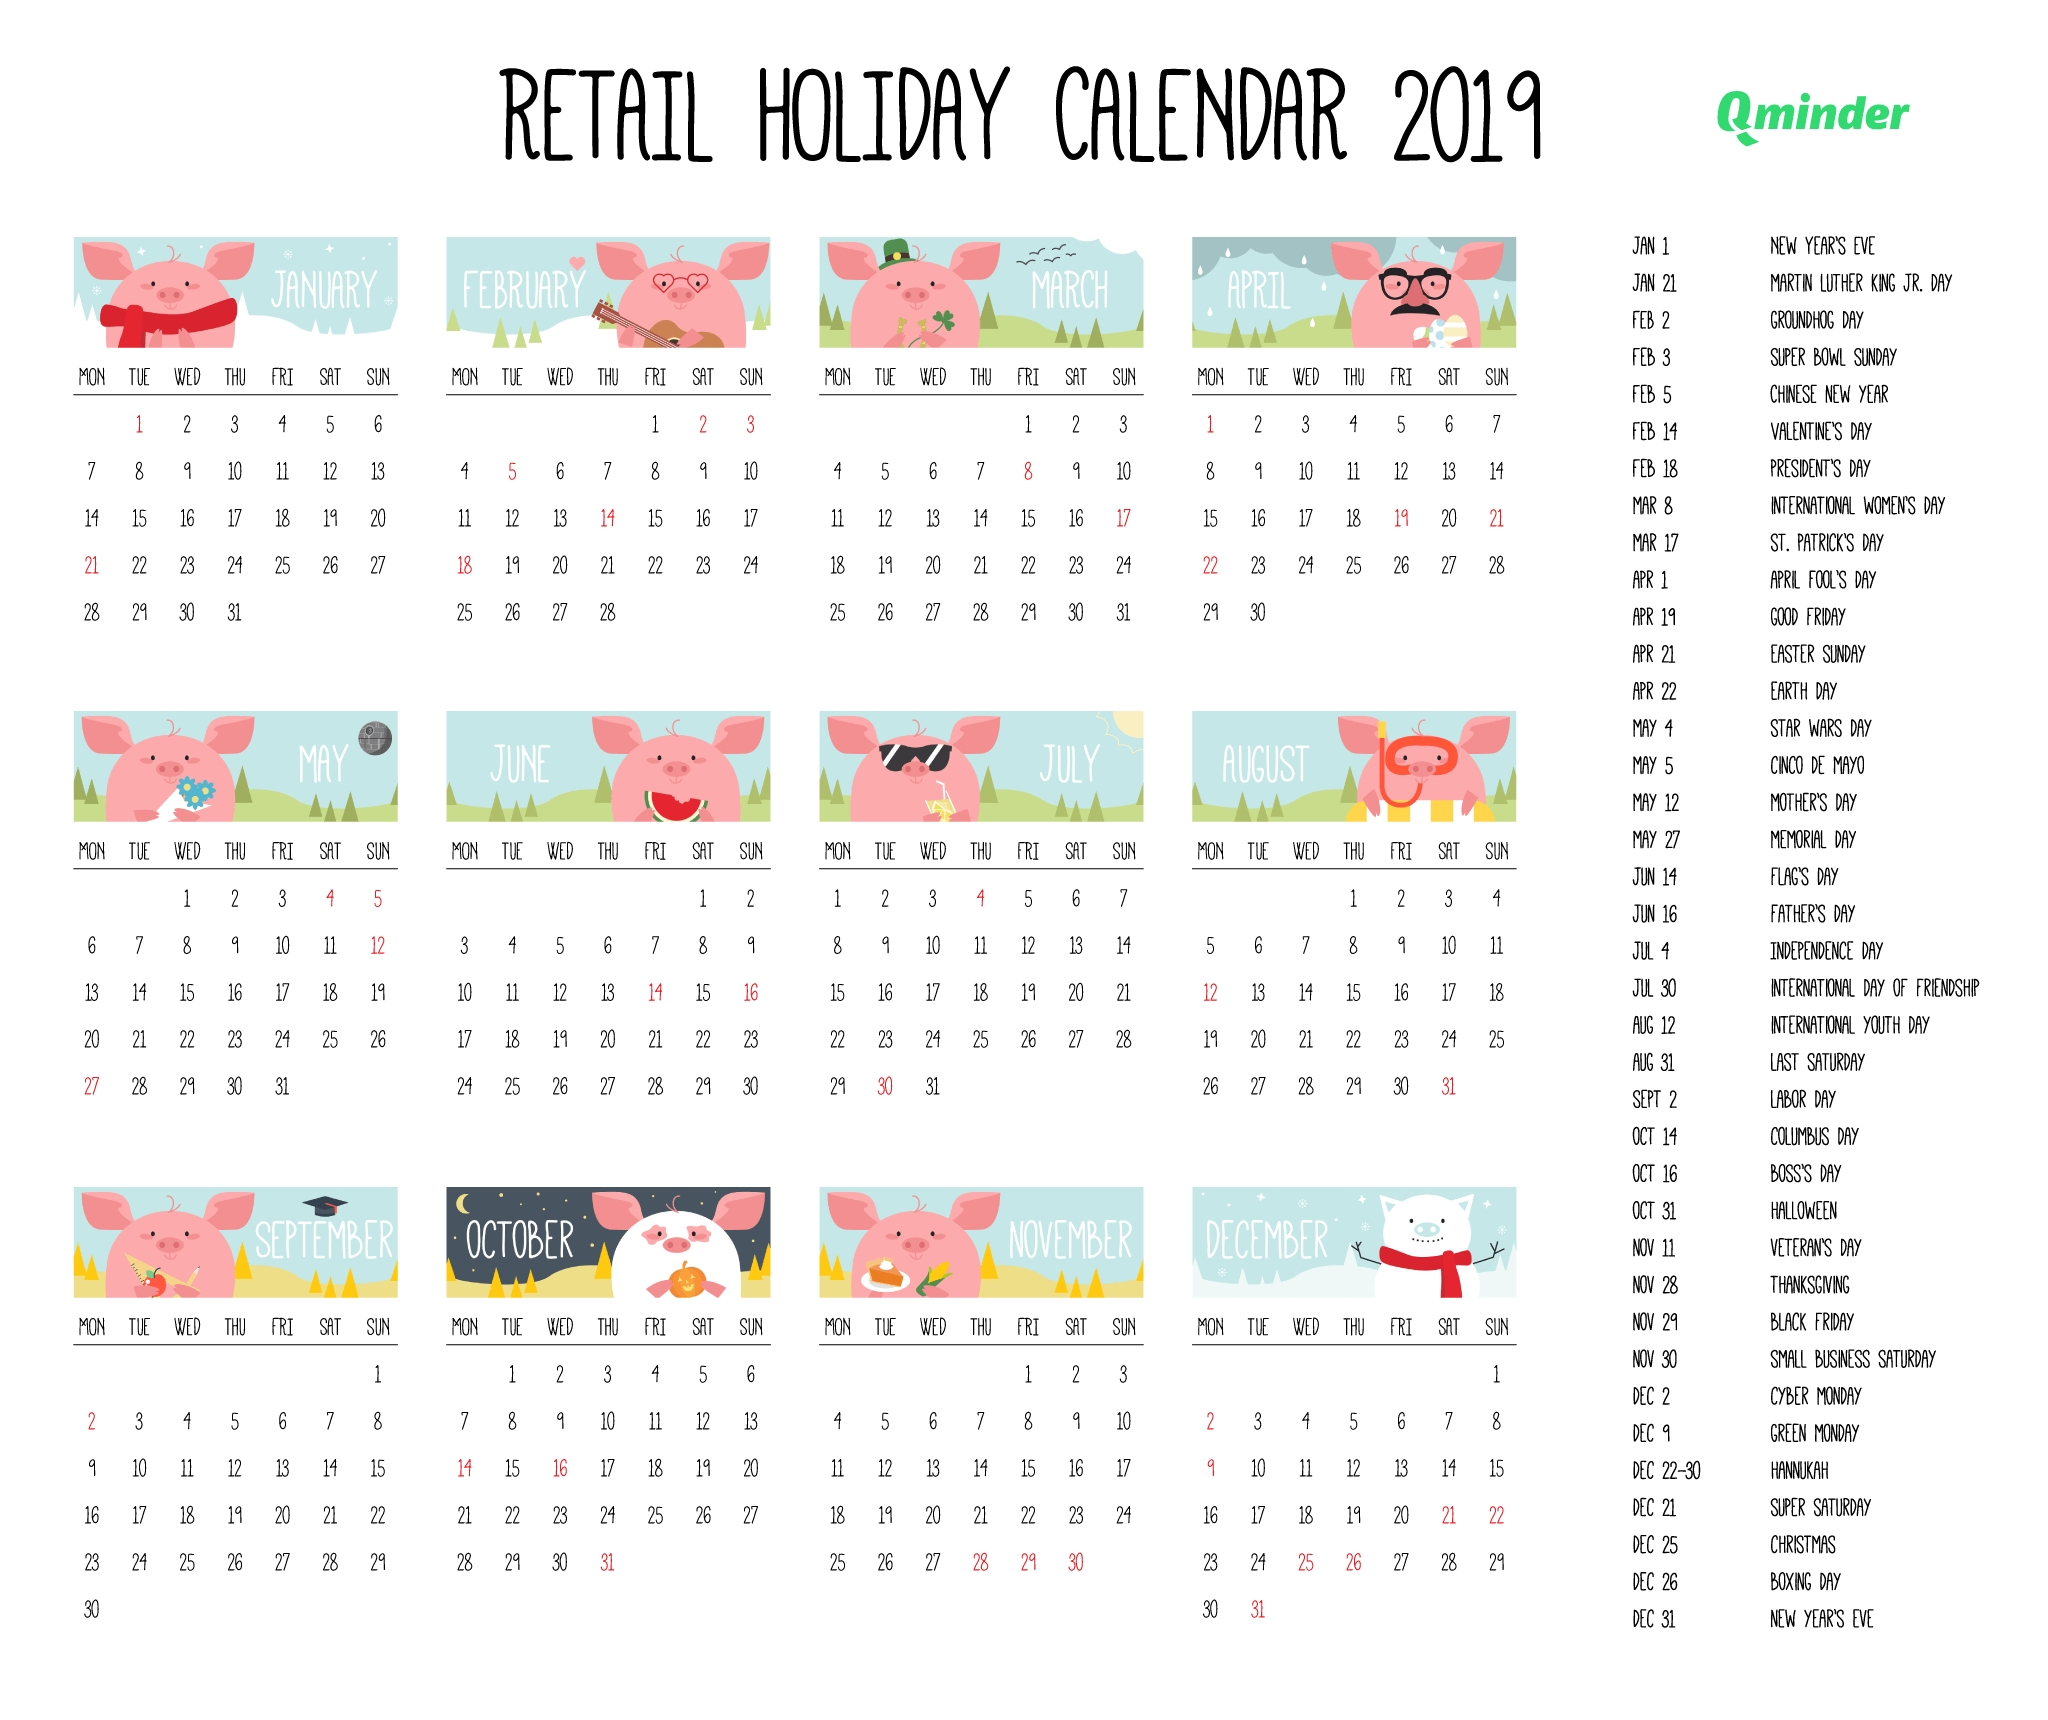 2019 Retail Holiday Calendar | Qminder regarding Retail Calander 2020